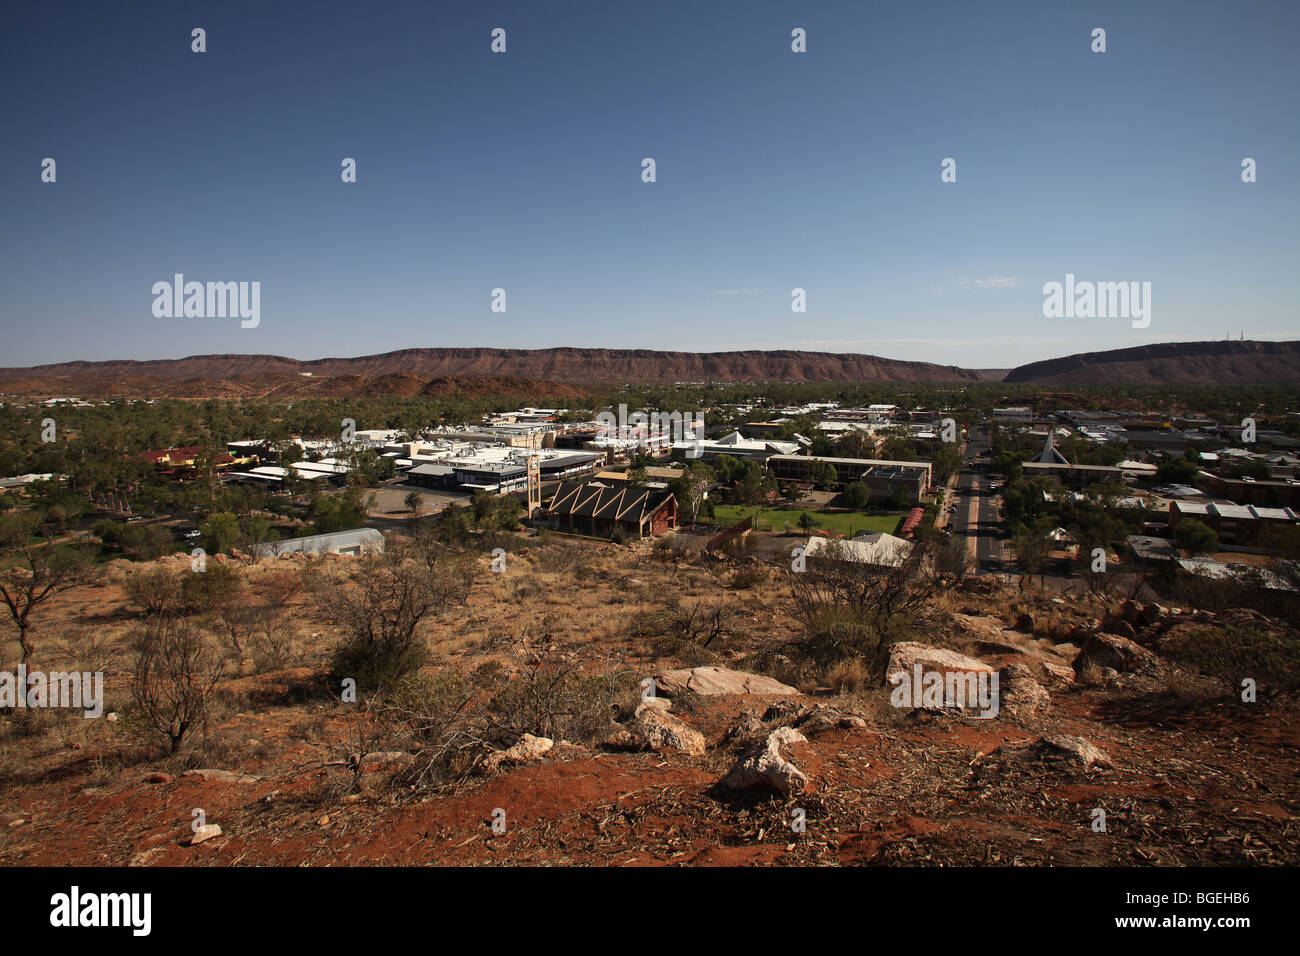 Alice Springs-View from ANZAC Hill-NT-Australia - Stock Image